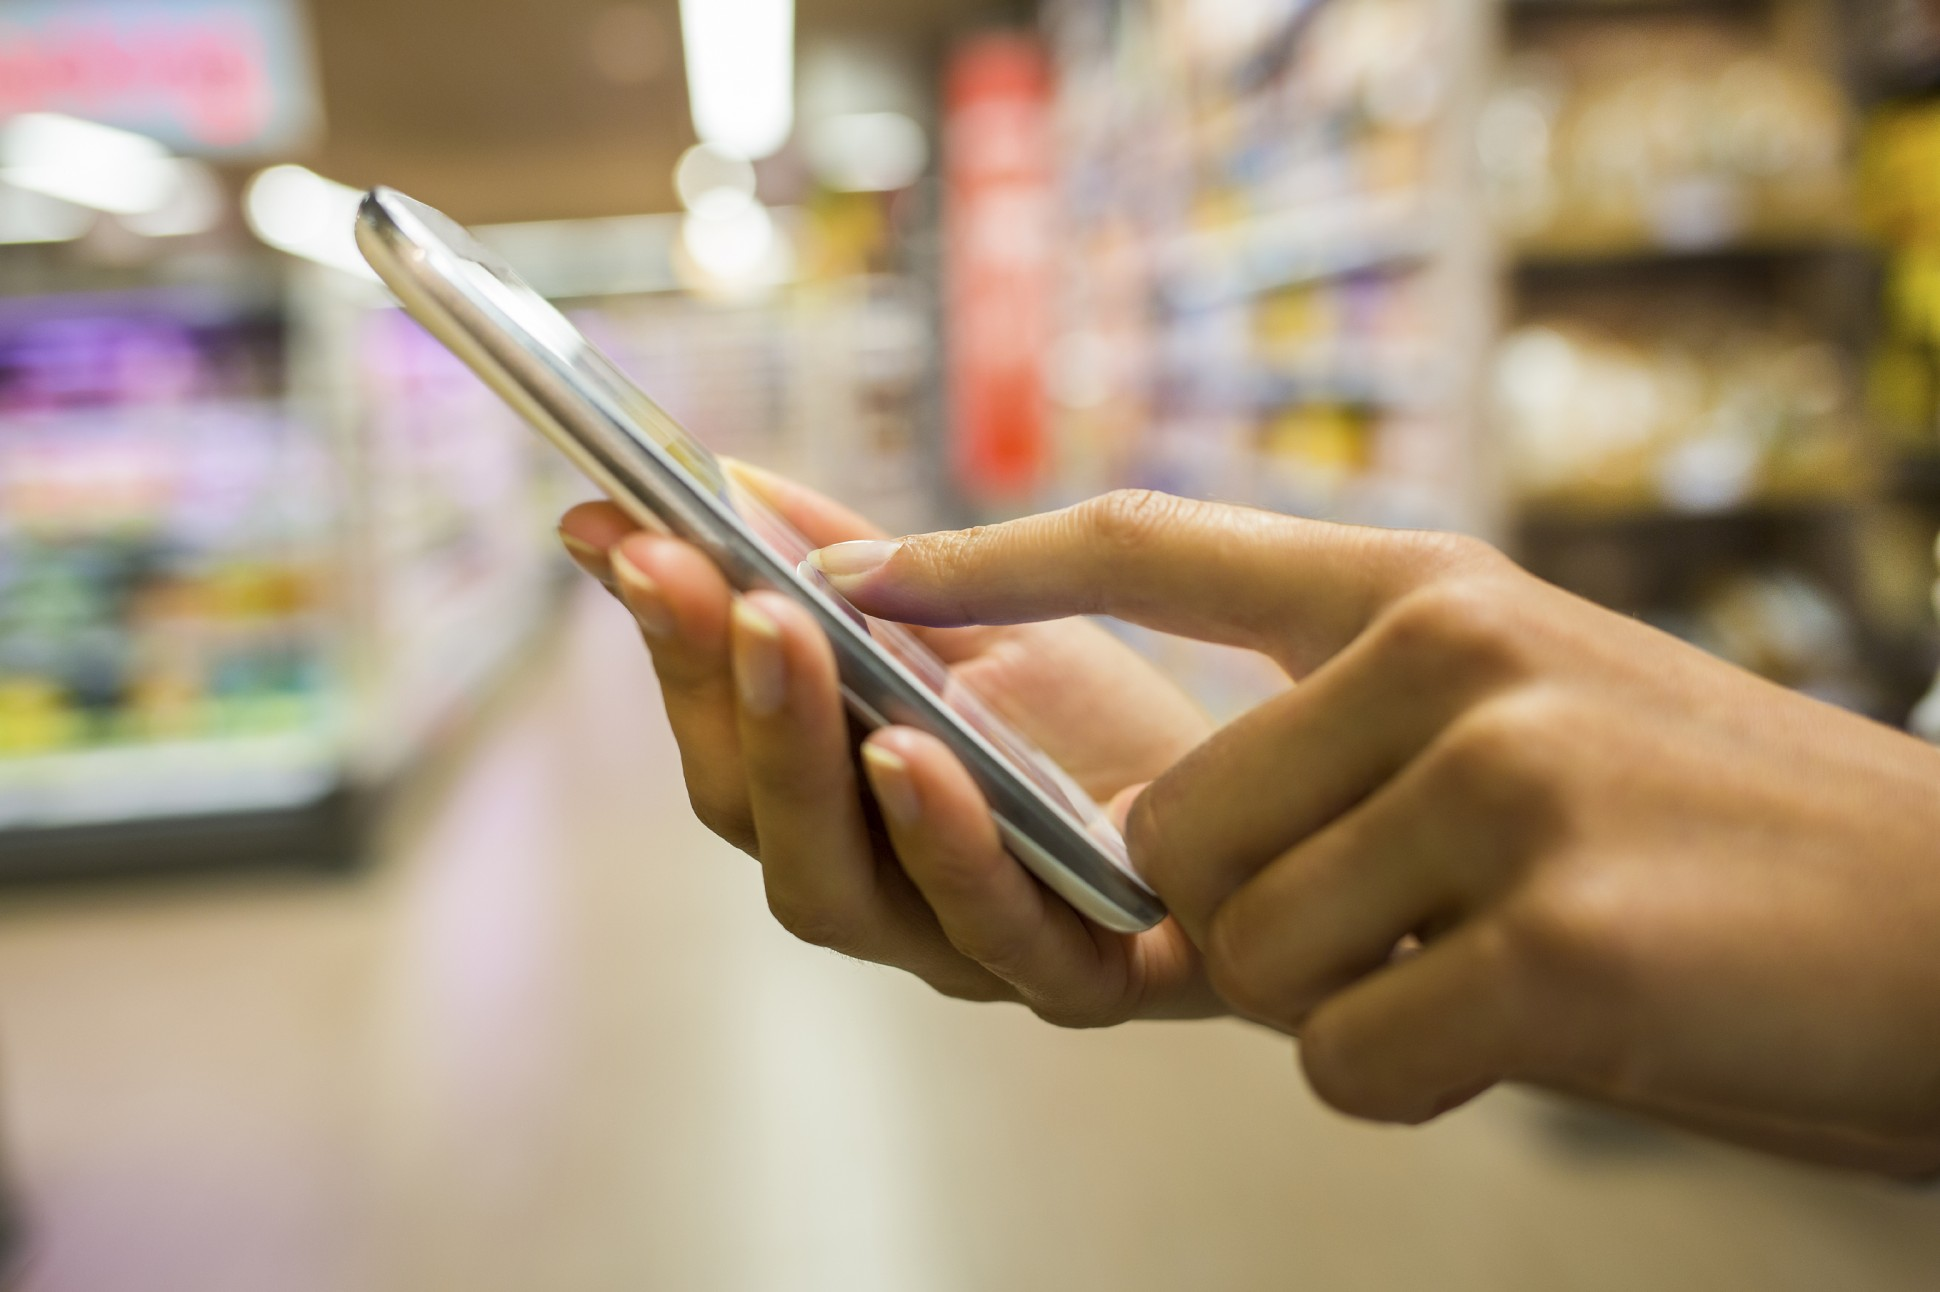 Smartphone in grocery store